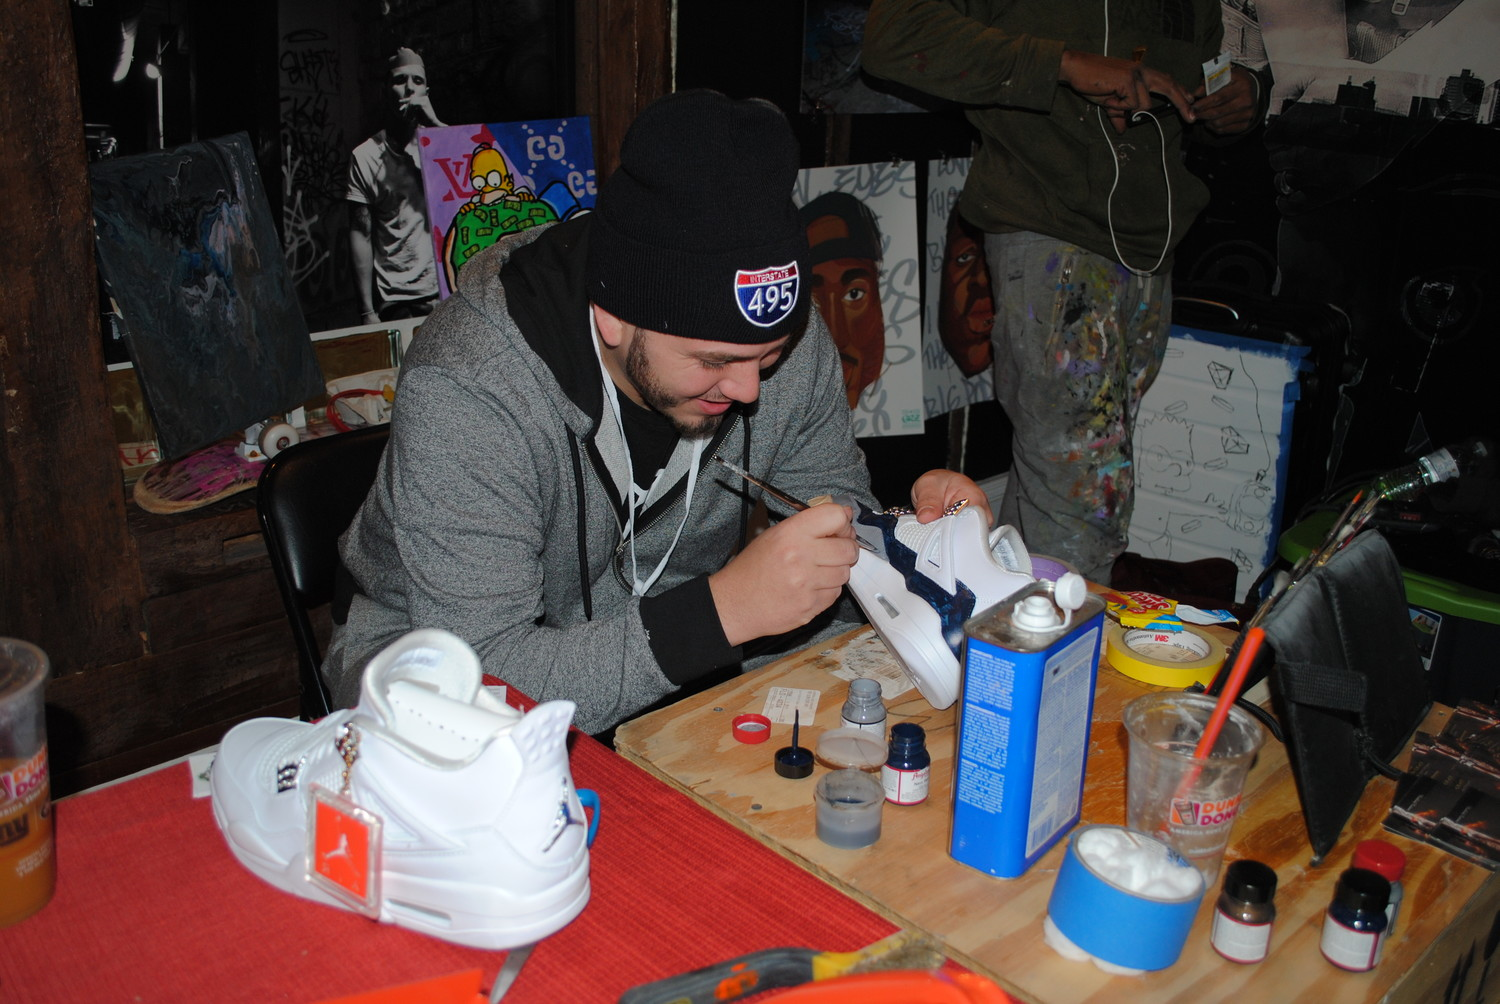 Dominick Brasiello, owner of Clean Kicks Long Island in Glen Cove, painted a custom sneaker at his booth in the First City Project house.